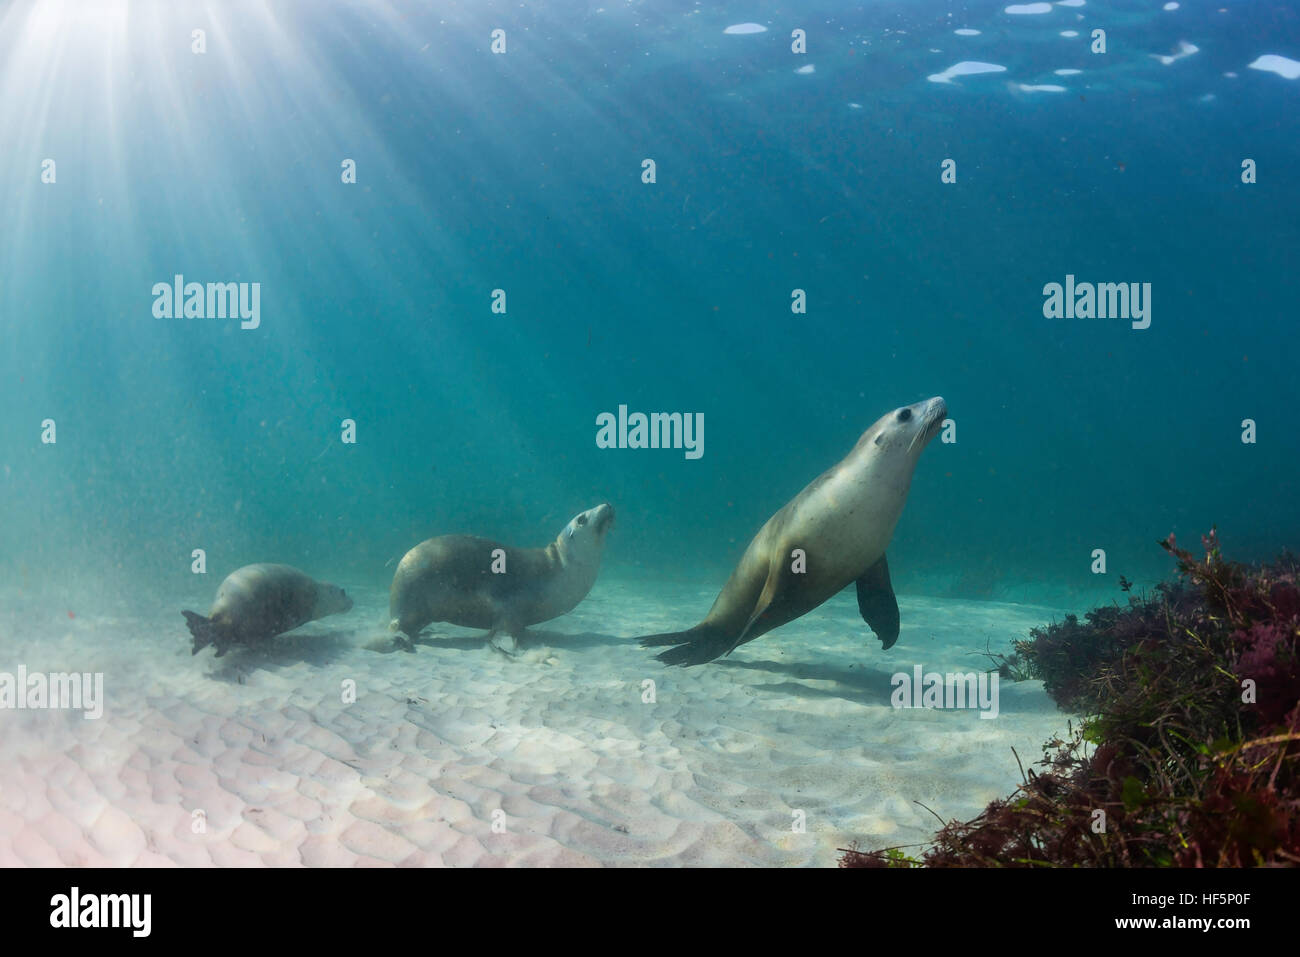 Group of Australian sea lions underwater view, Neptune Islands, South Australia. - Stock Image